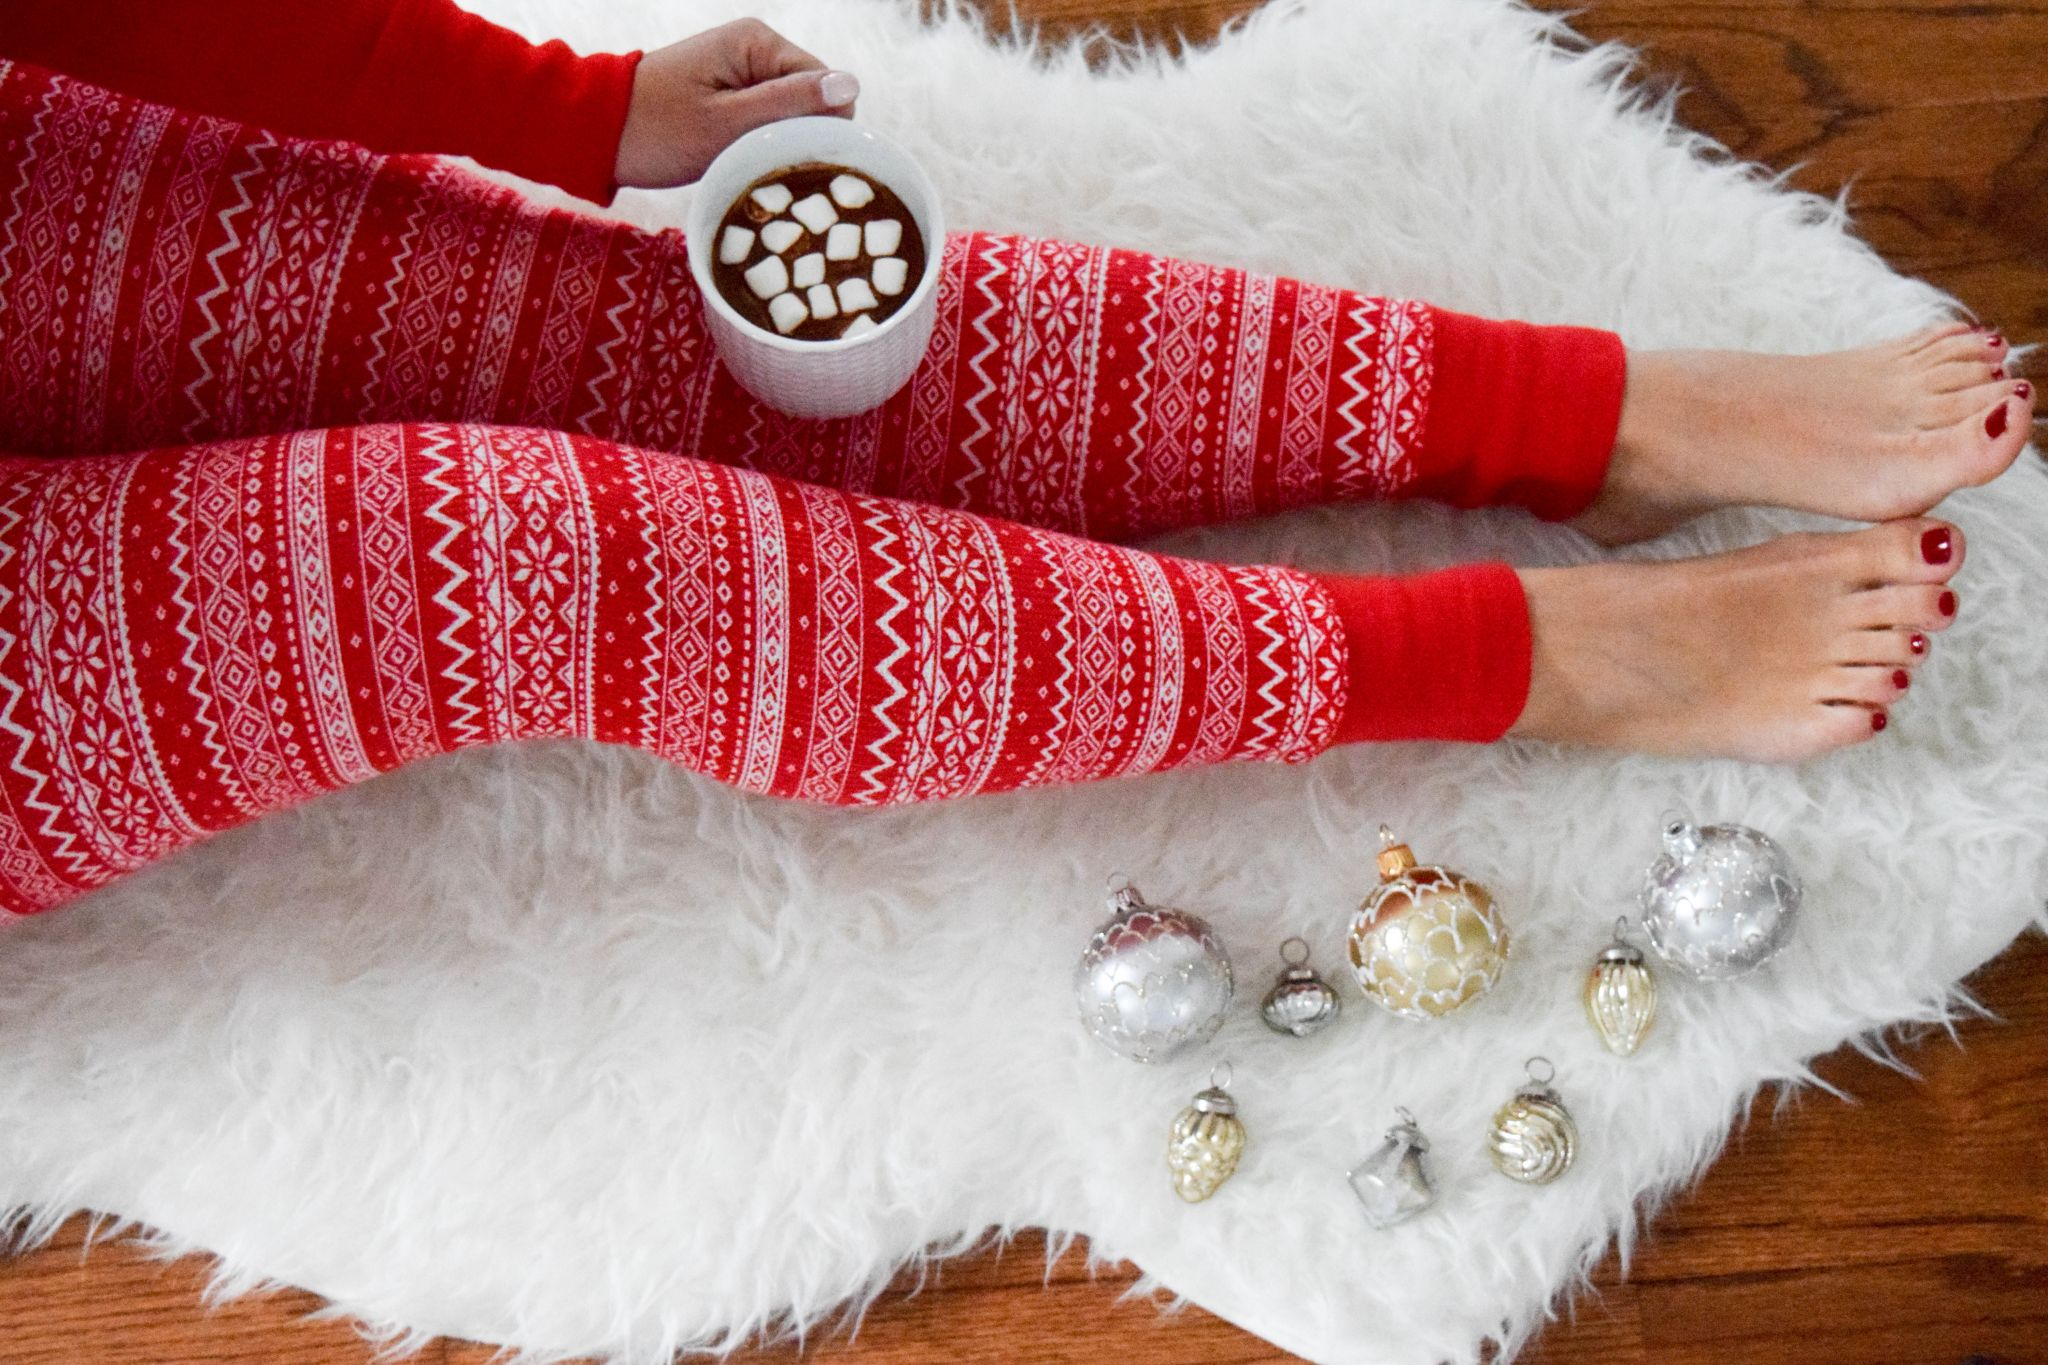 christmas pjs old navy christmas pajamas christmas morning pajama ideas boston chic party 2 - Christmas Pajamas Old Navy